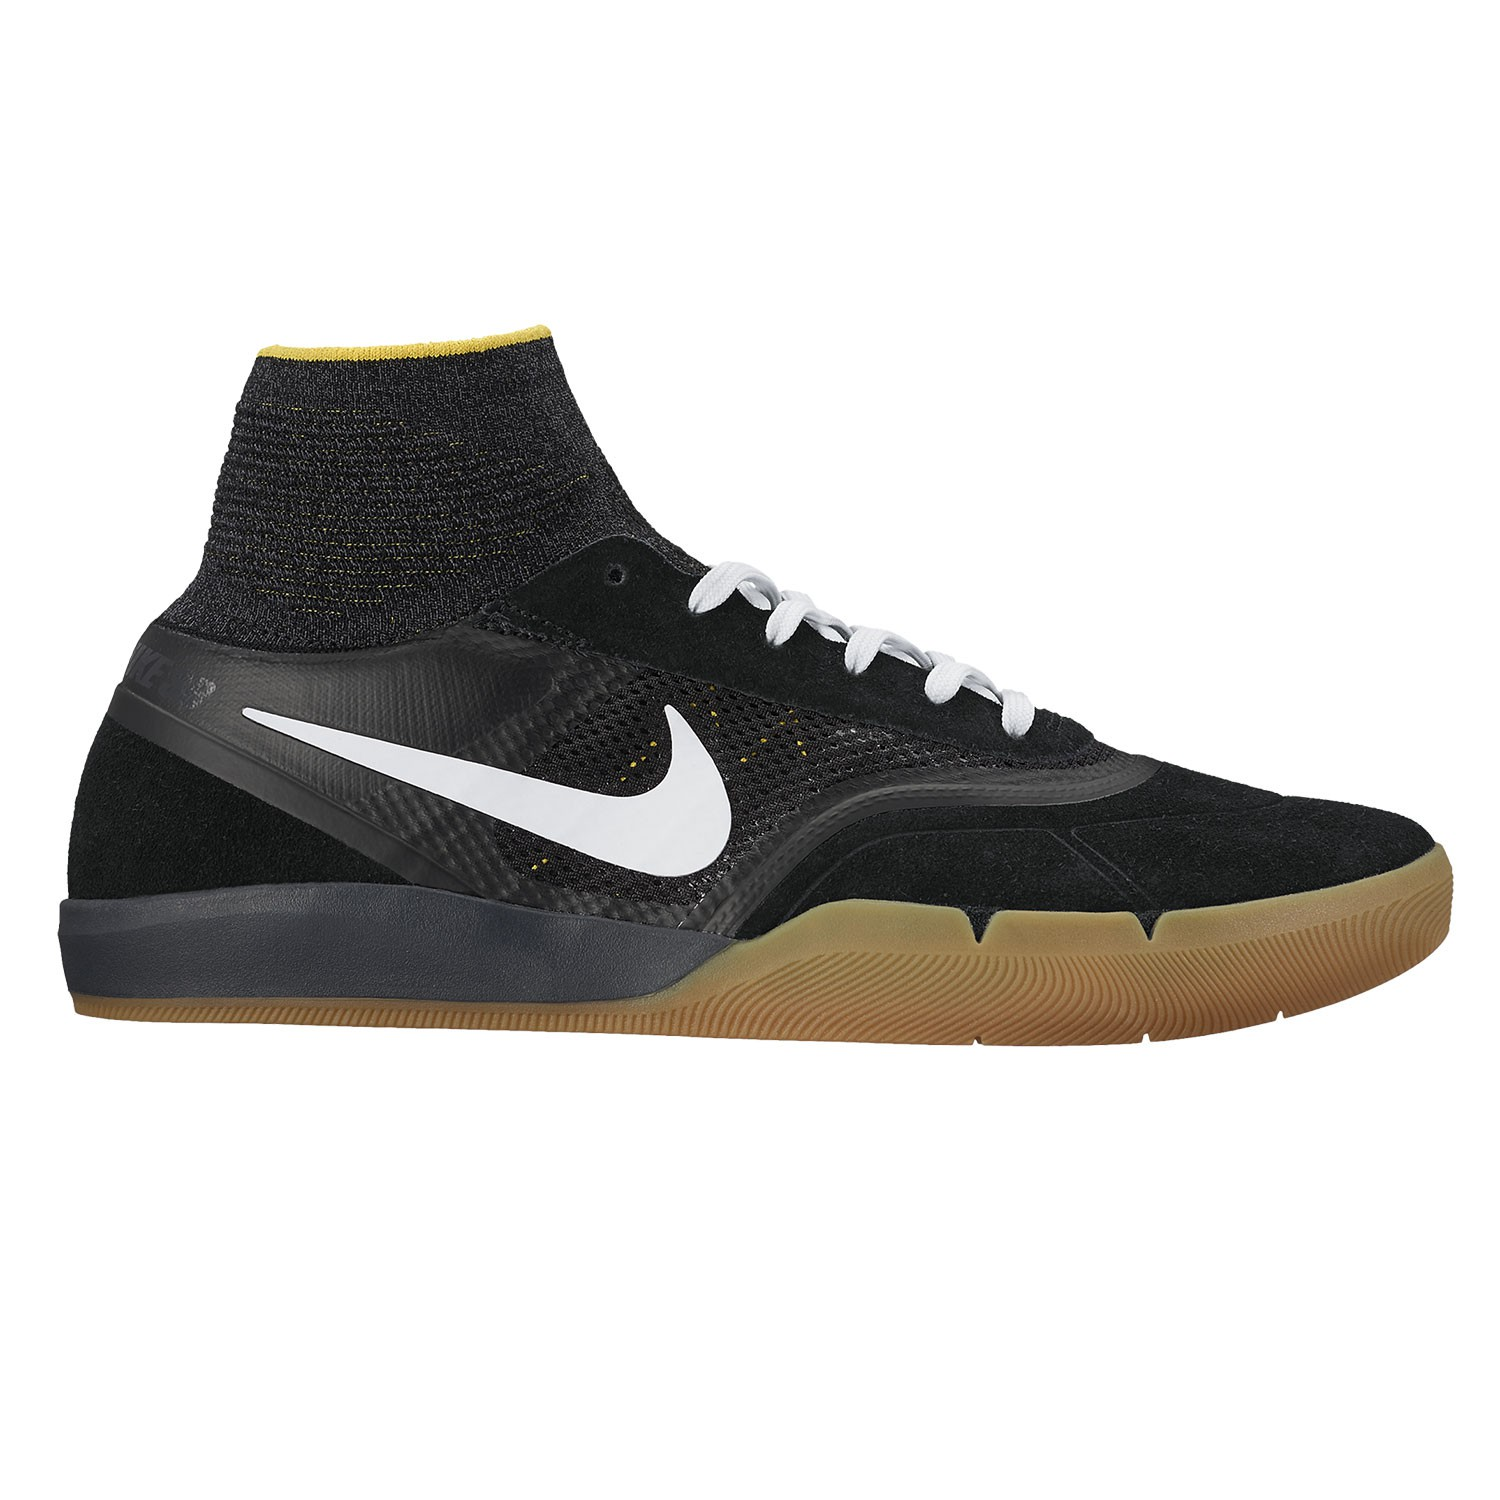 Tenisky Nike SB Hyperfeel Erik Koston 3 black/white-yellow strike